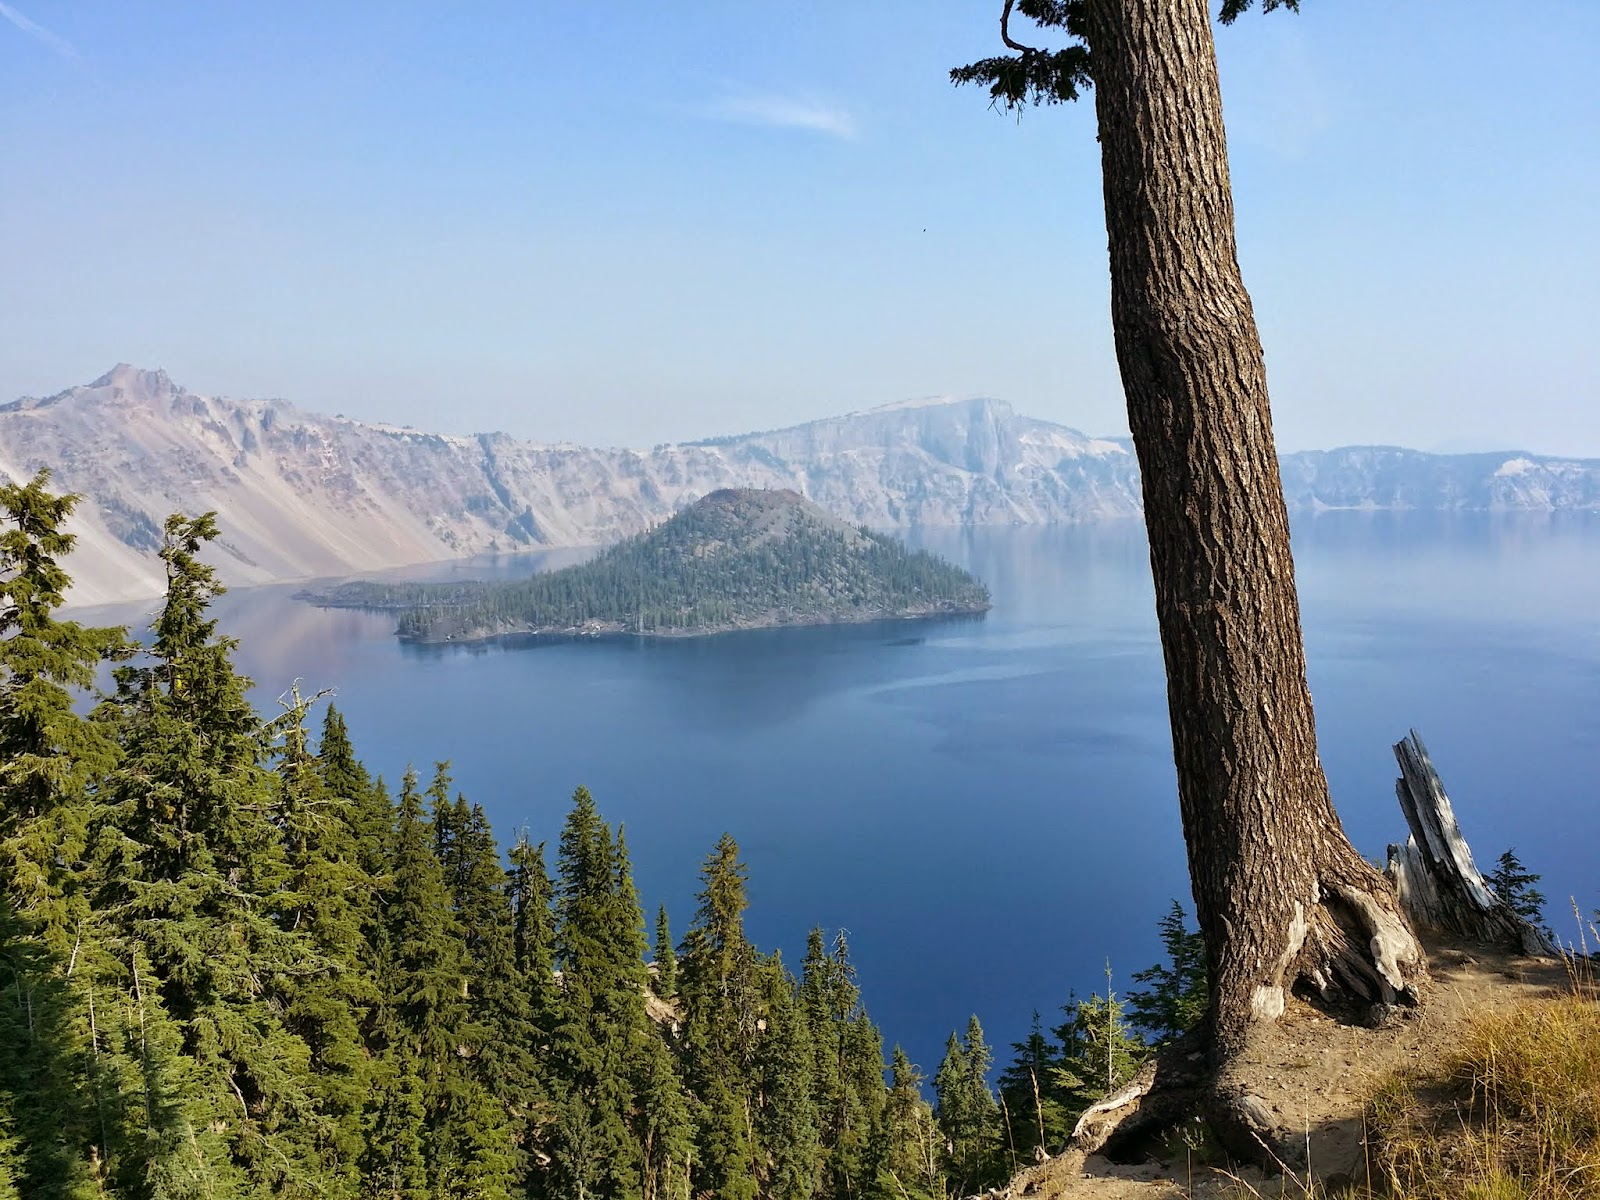 Wizard Island inside Crater Lake